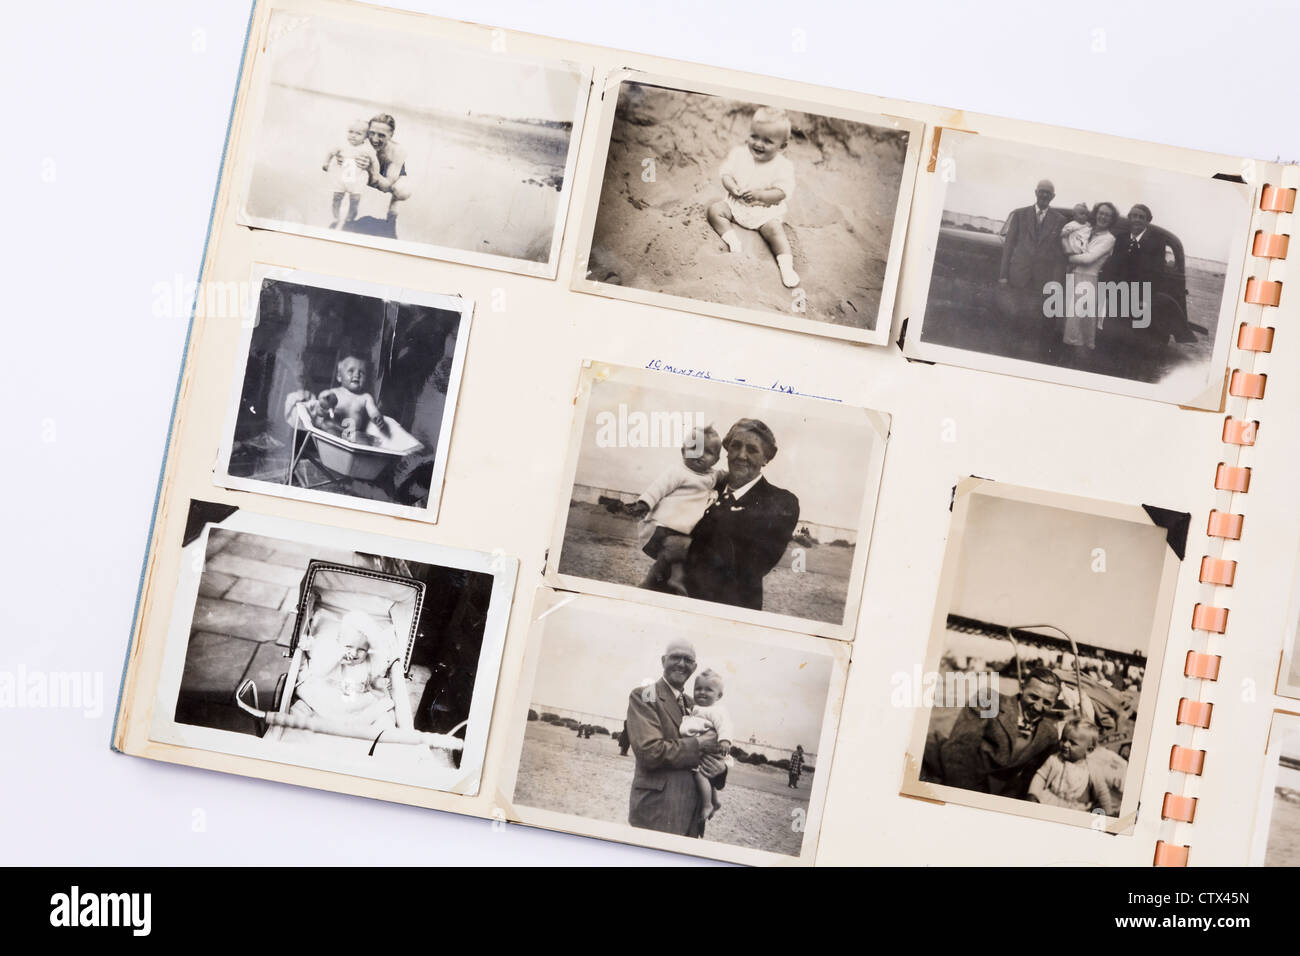 Old faded black and white printed photographs in a family photograph album from 1950s era with page showing photos - Stock Image